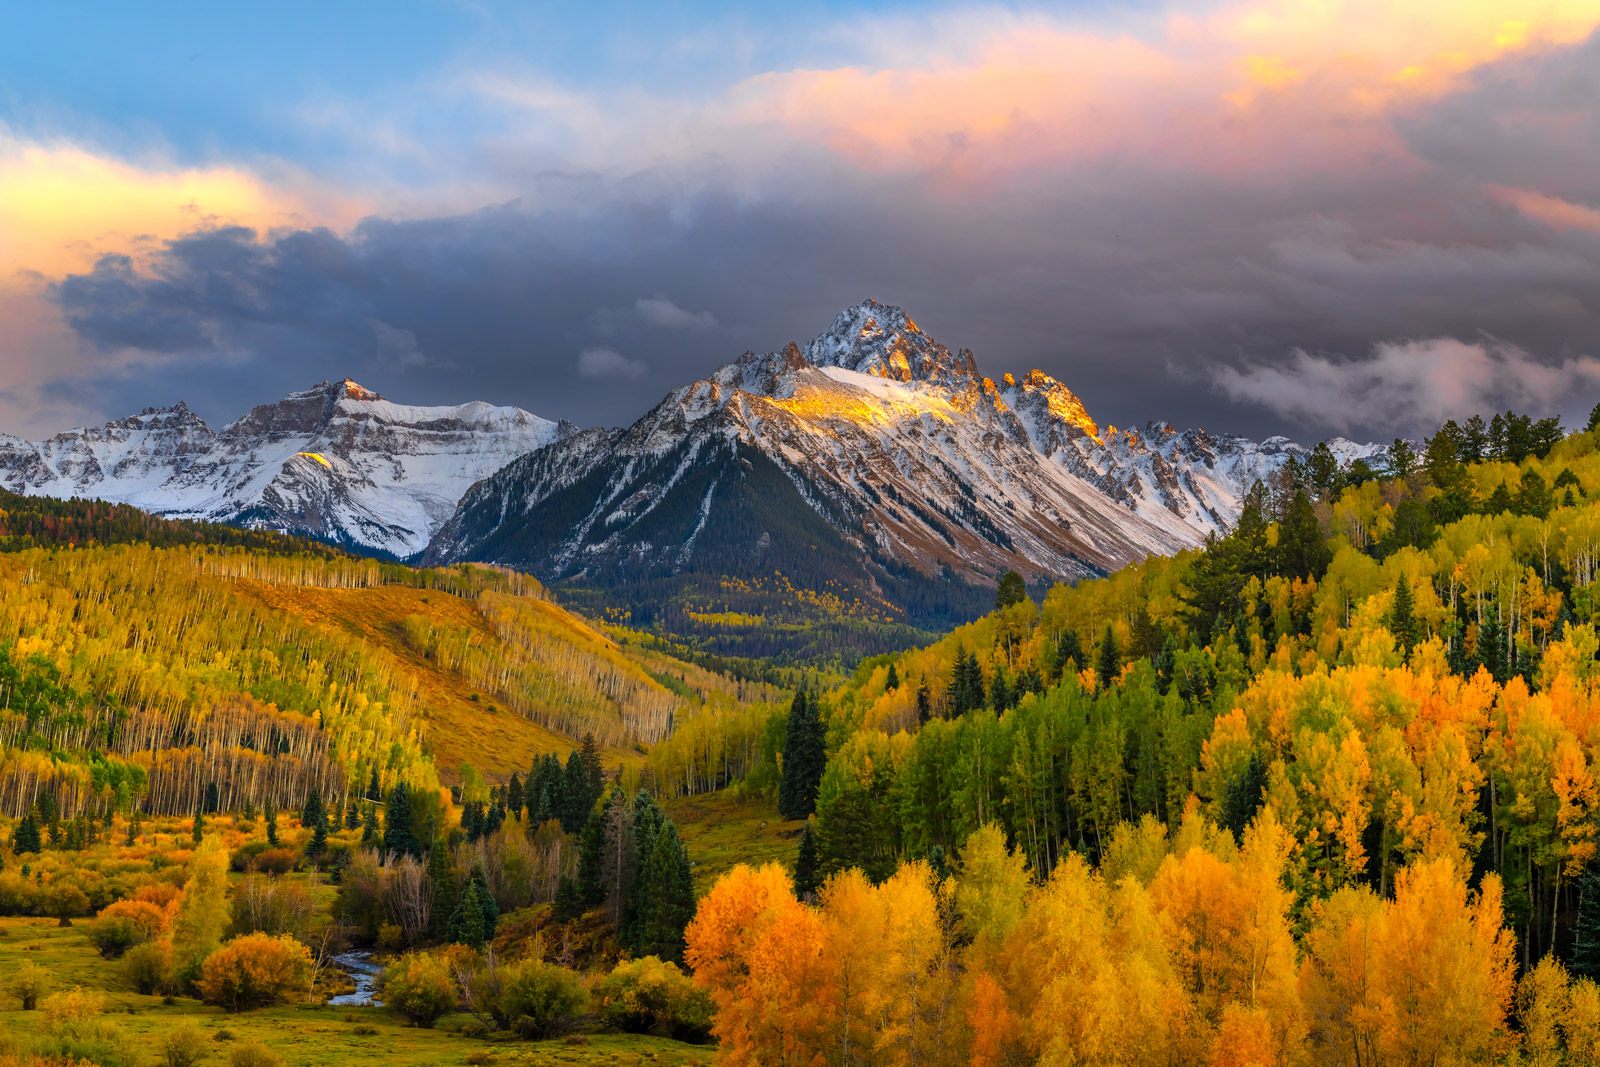 Colorado, San Juan, Mountains, Mount Sneffles, Fall, limited edition, photograph, southwest colorado, fine art, landscape, photo